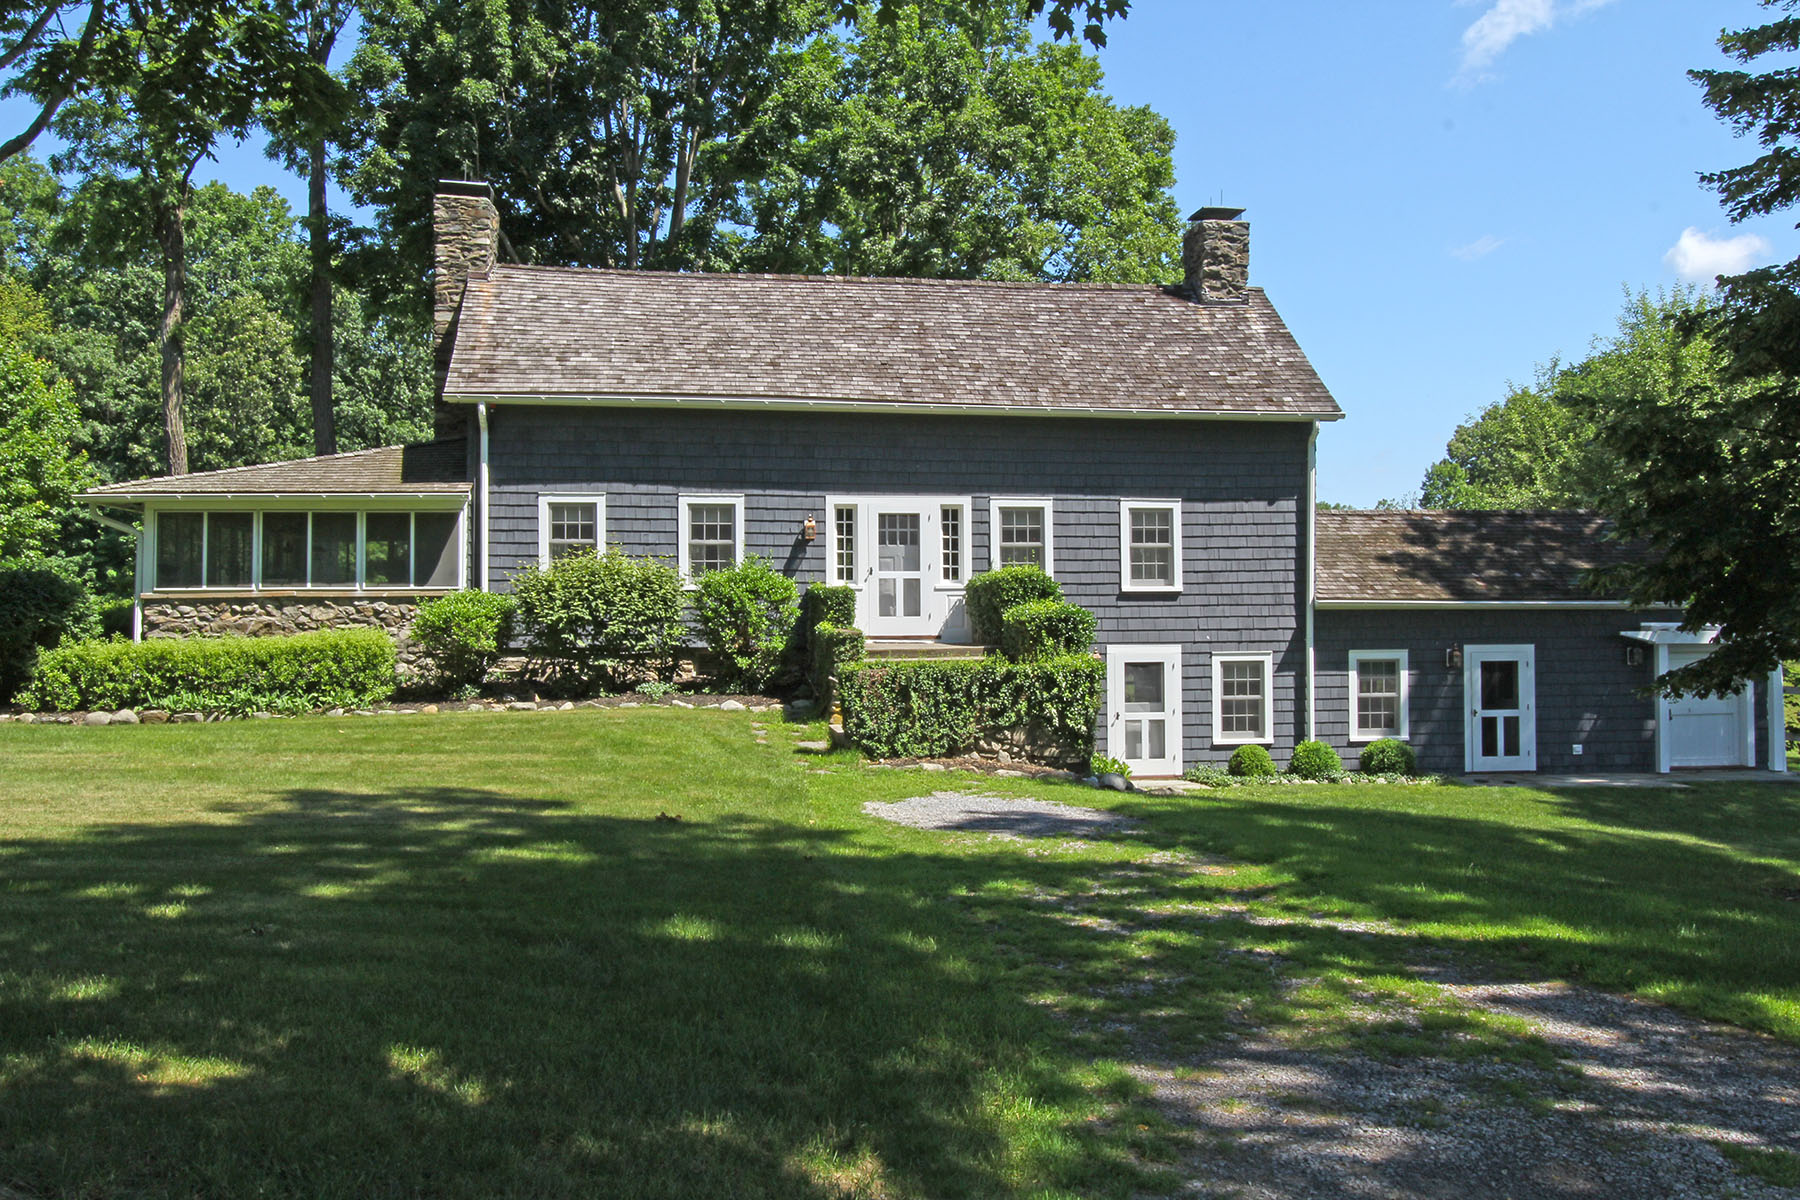 Maison unifamiliale pour l Vente à Basswood Farm 218 Smith Road Pleasant Valley, New York 12569 États-Unis